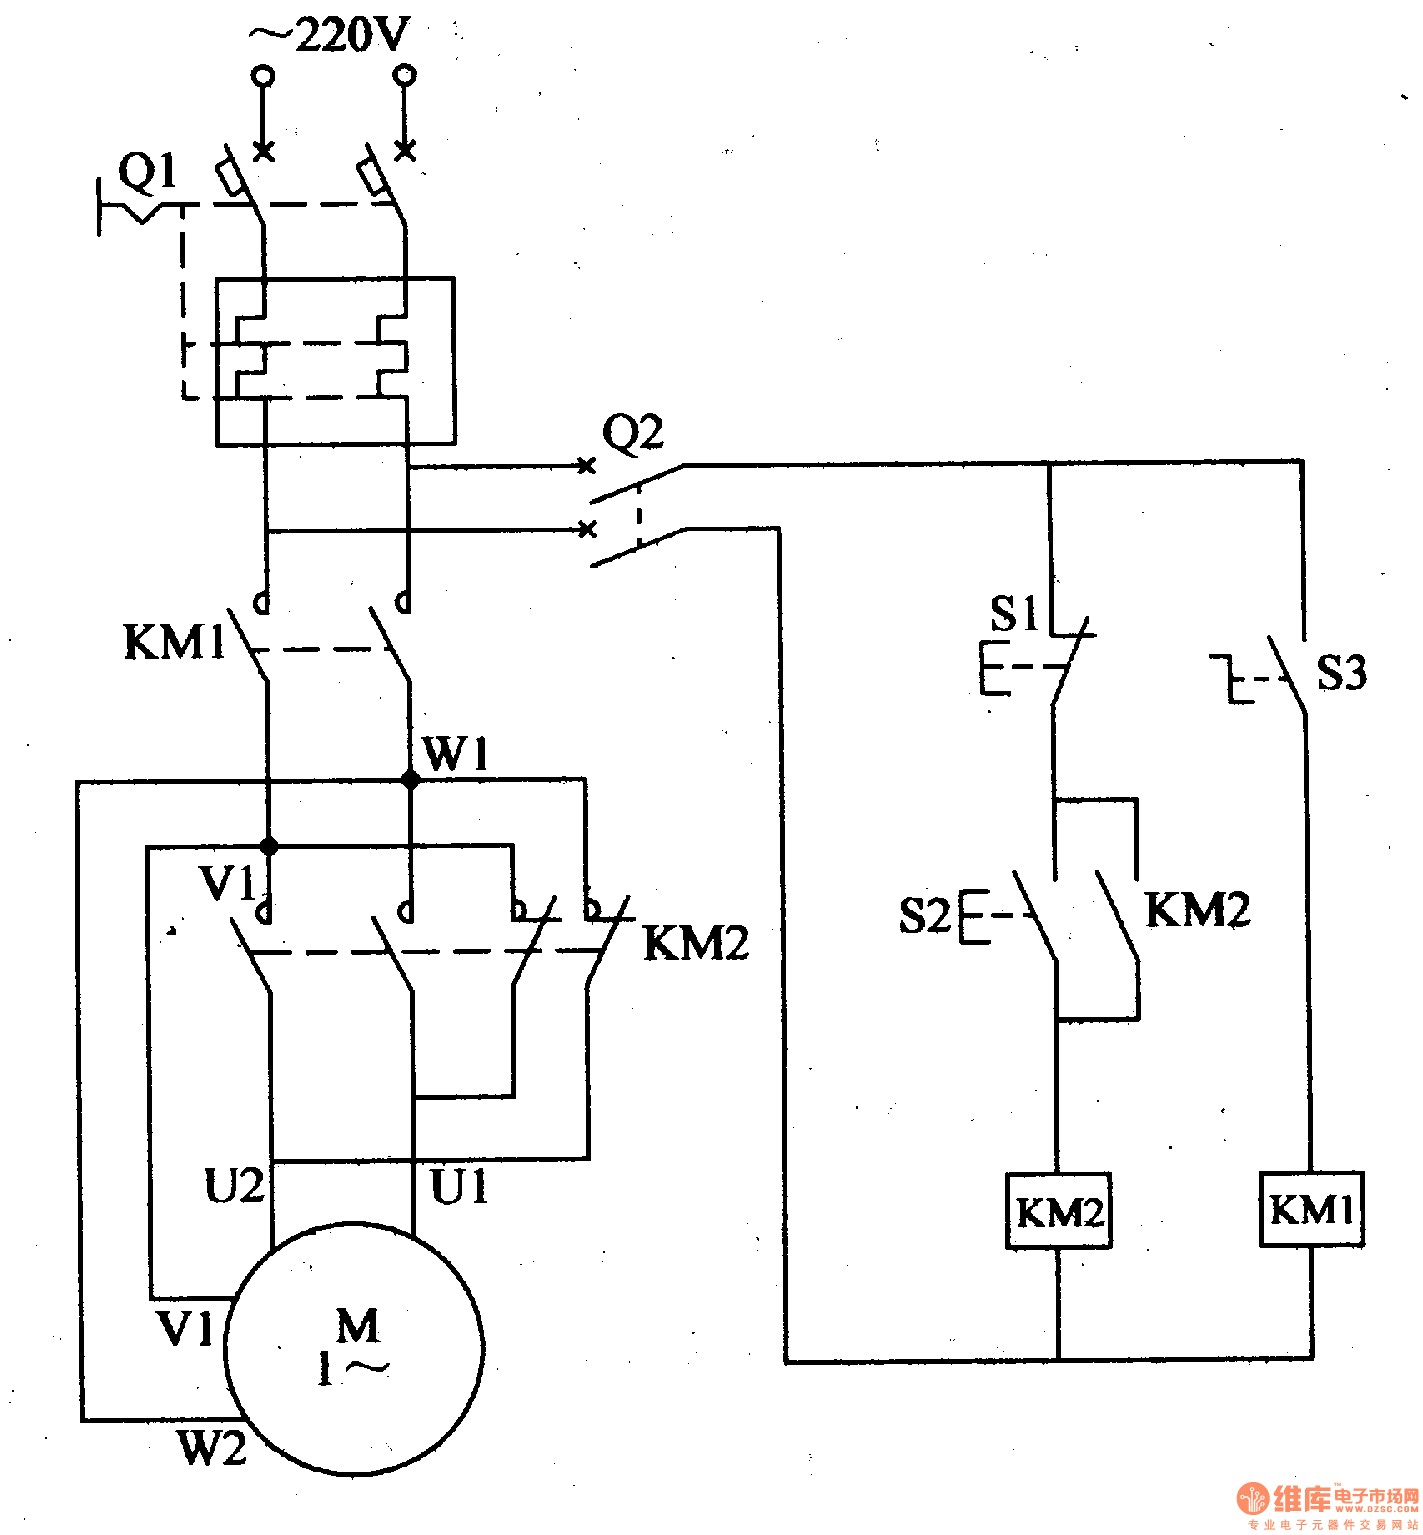 3 Phase to Single Phase Wiring Diagram Wiring Diagram Single Phase ...